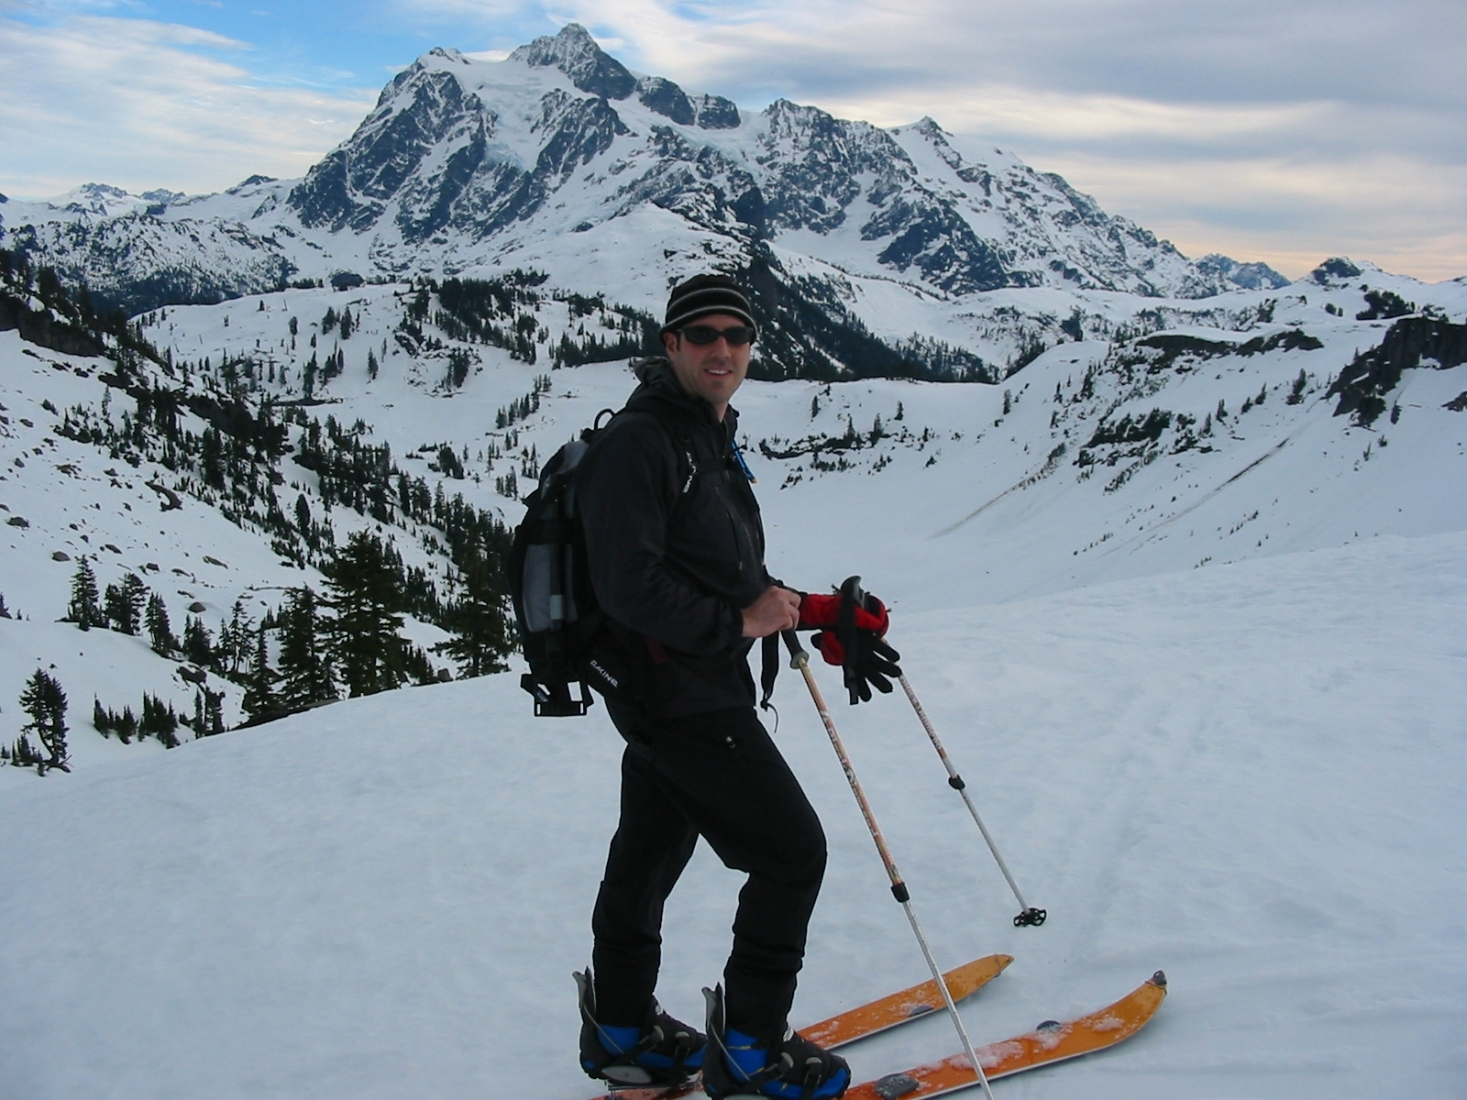 A man on skis with a snow-covered mountain landscape in the background.